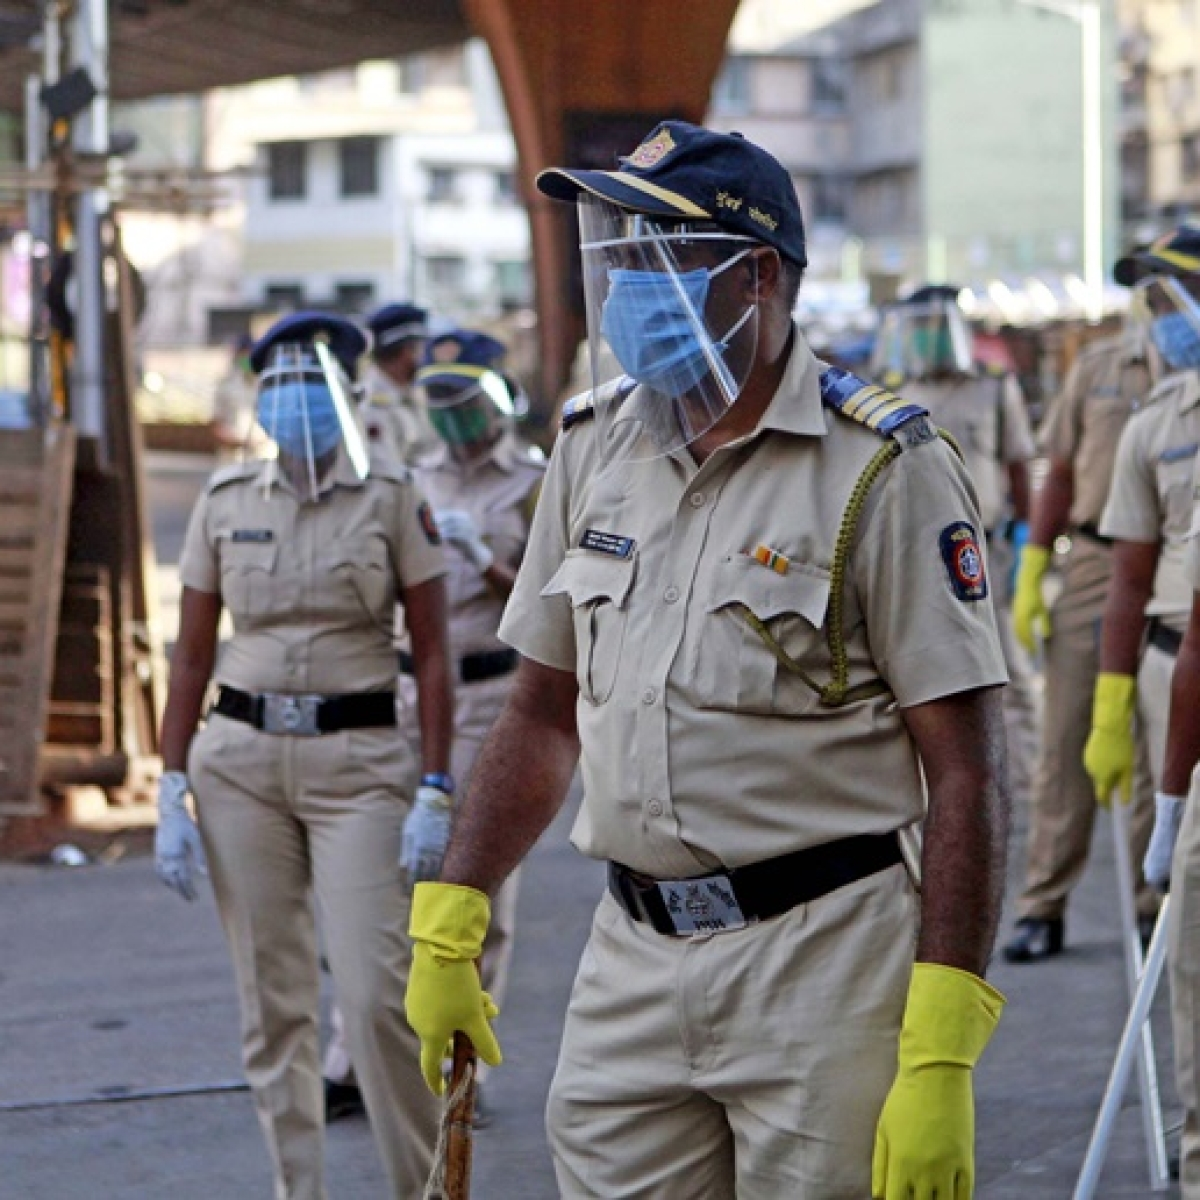 Maharashtra police report 55 new COVID-19 cases, tally at 4,103